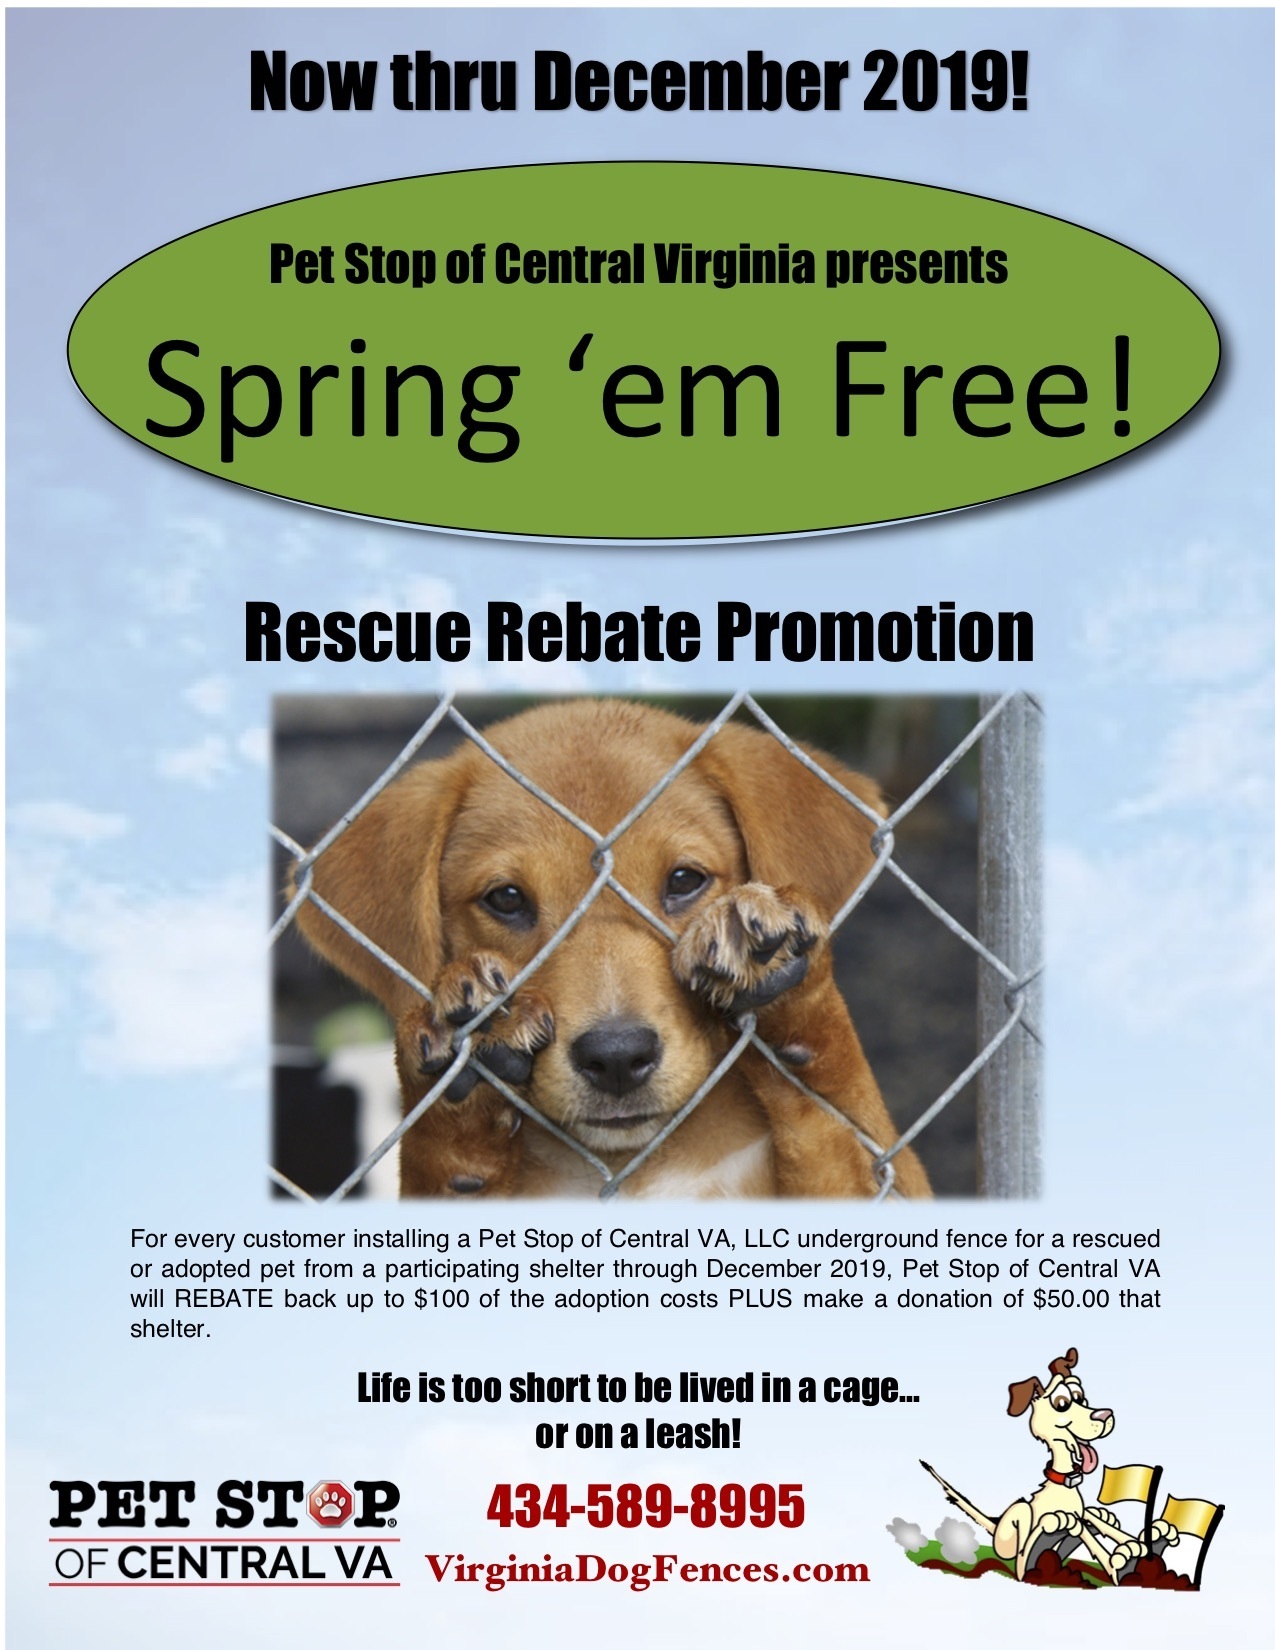 Electric Underground Dog Fencing in Central Virginia